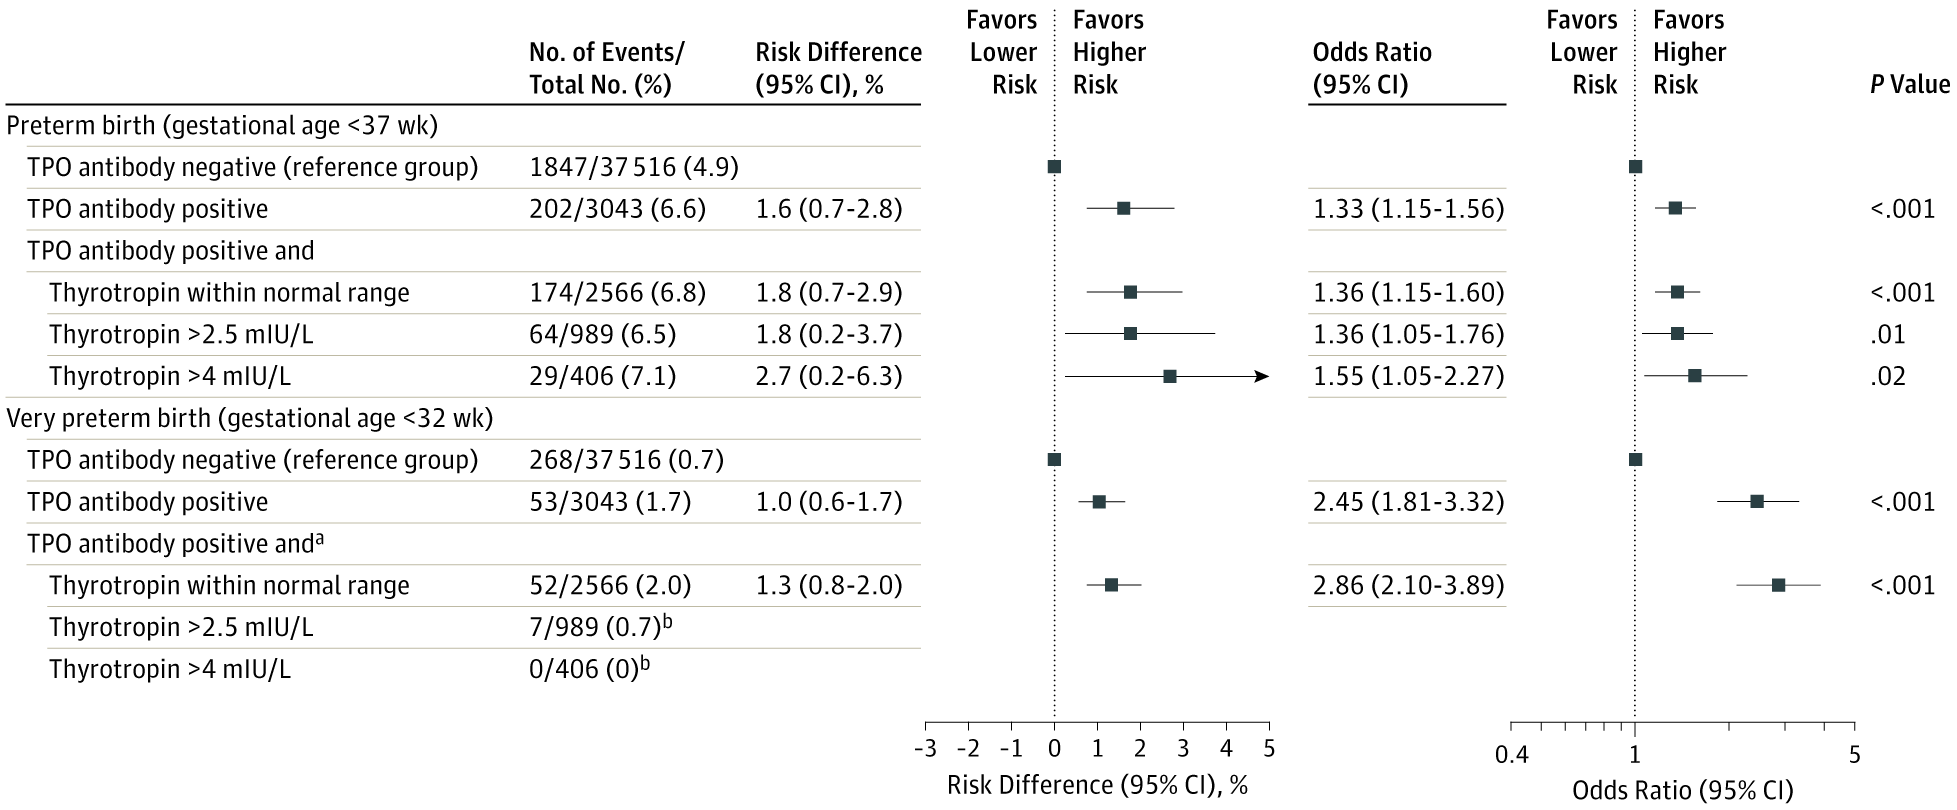 Association of Thyroid Function Test Abnormalities and Thyroid Autoimmunity With Preterm Birth